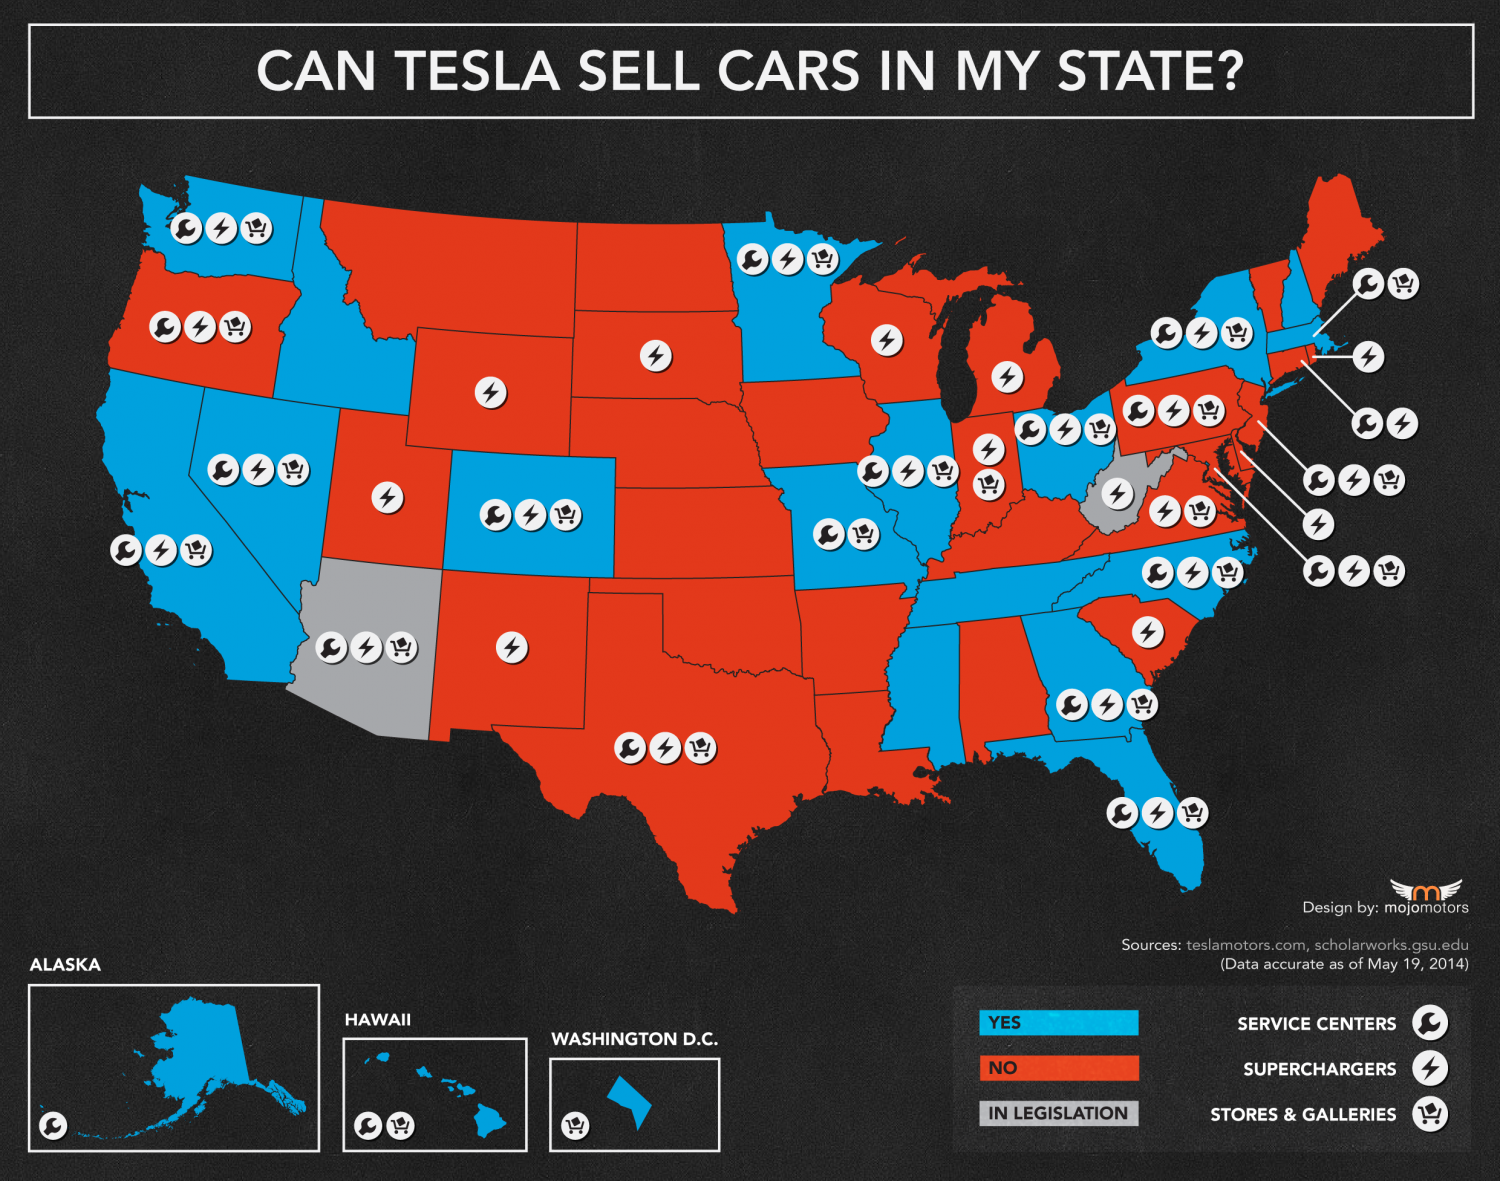 Can Tesla Sell Cars in my State? Infographic